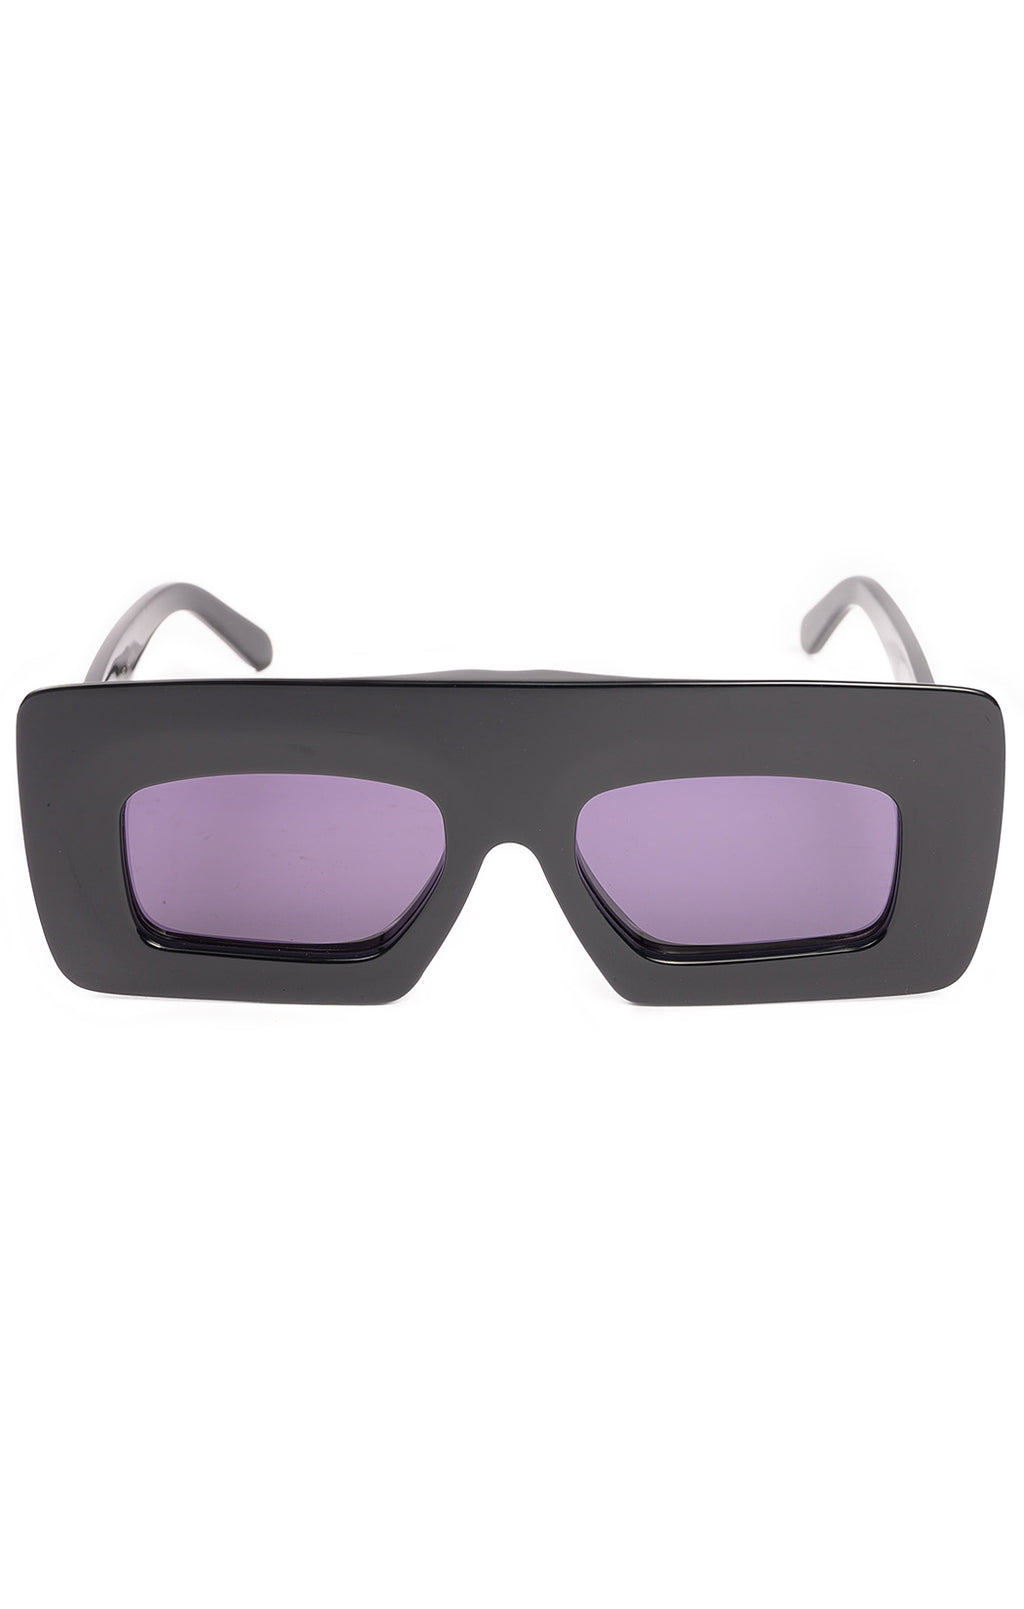 Black with purple lens sunglasses